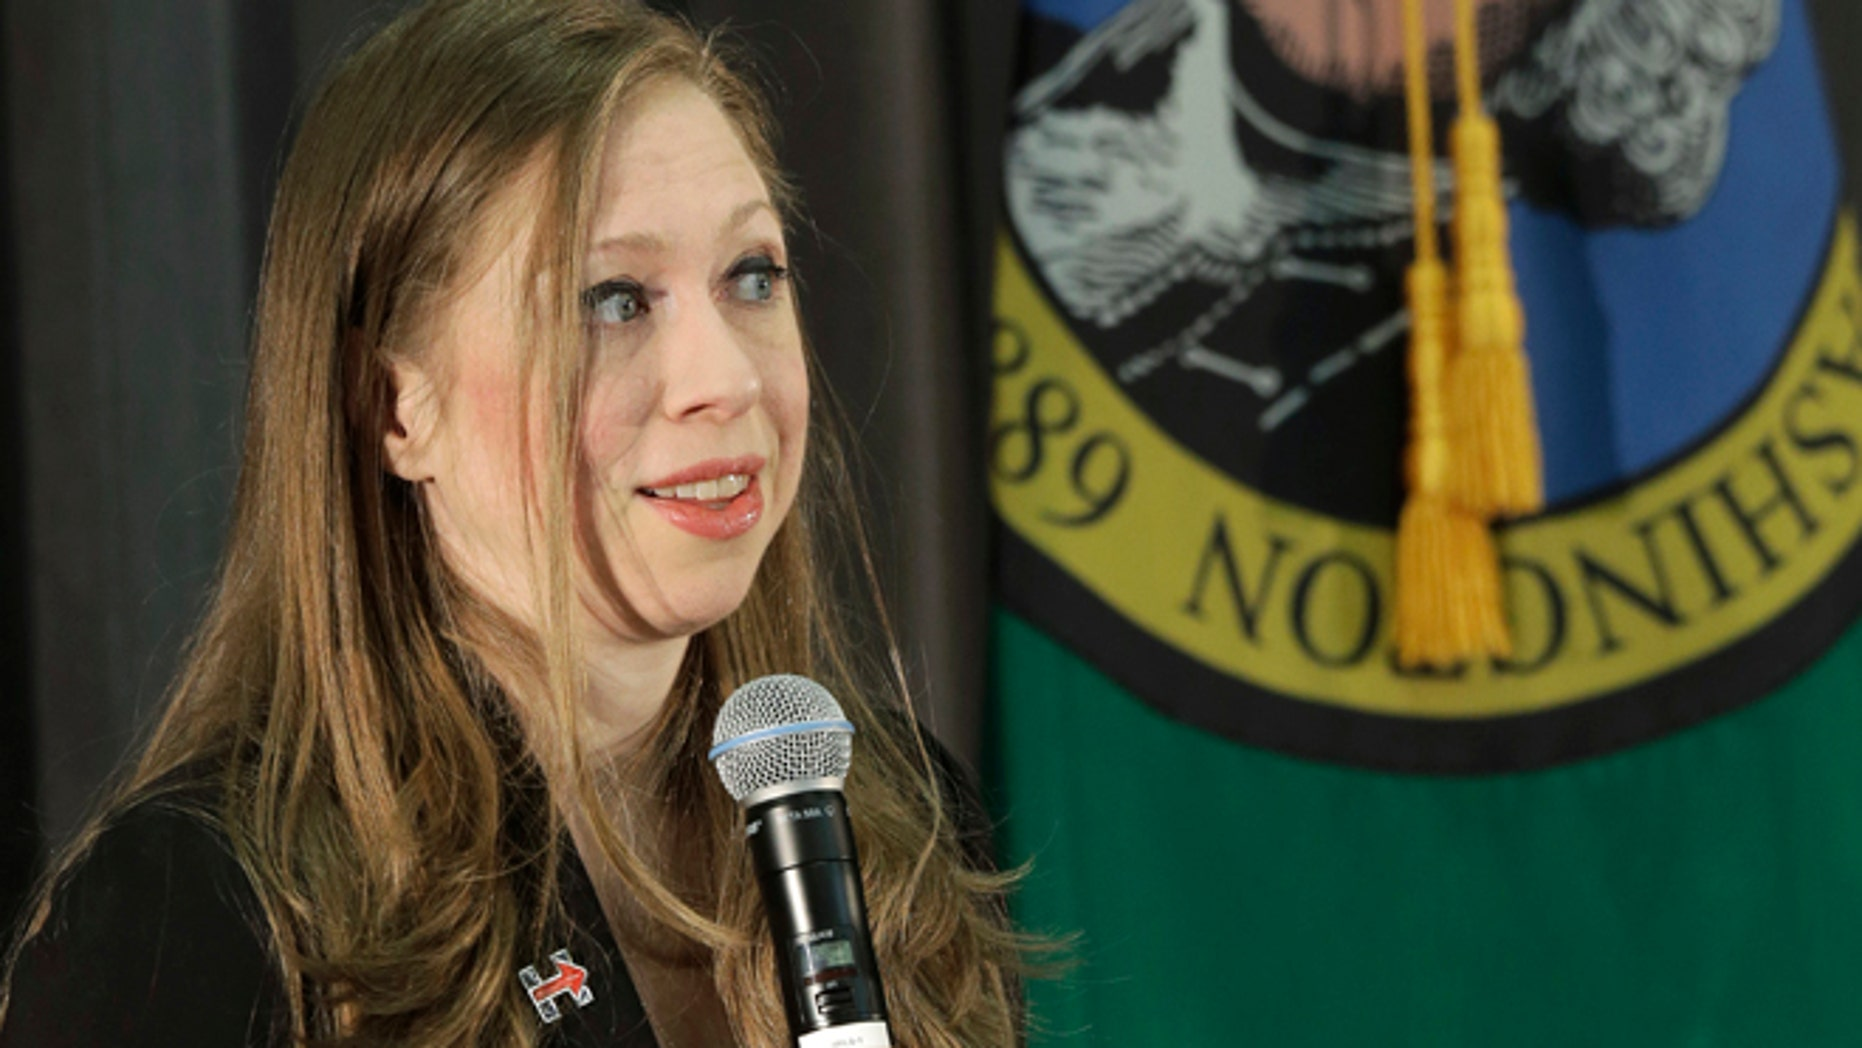 Mar. 22, 2016: Chelsea Clinton, daughter of Democratic presidential candidate Hillary Clinton, speaks next to the Washington state flag at Bates Technical College in Tacoma, Wash.